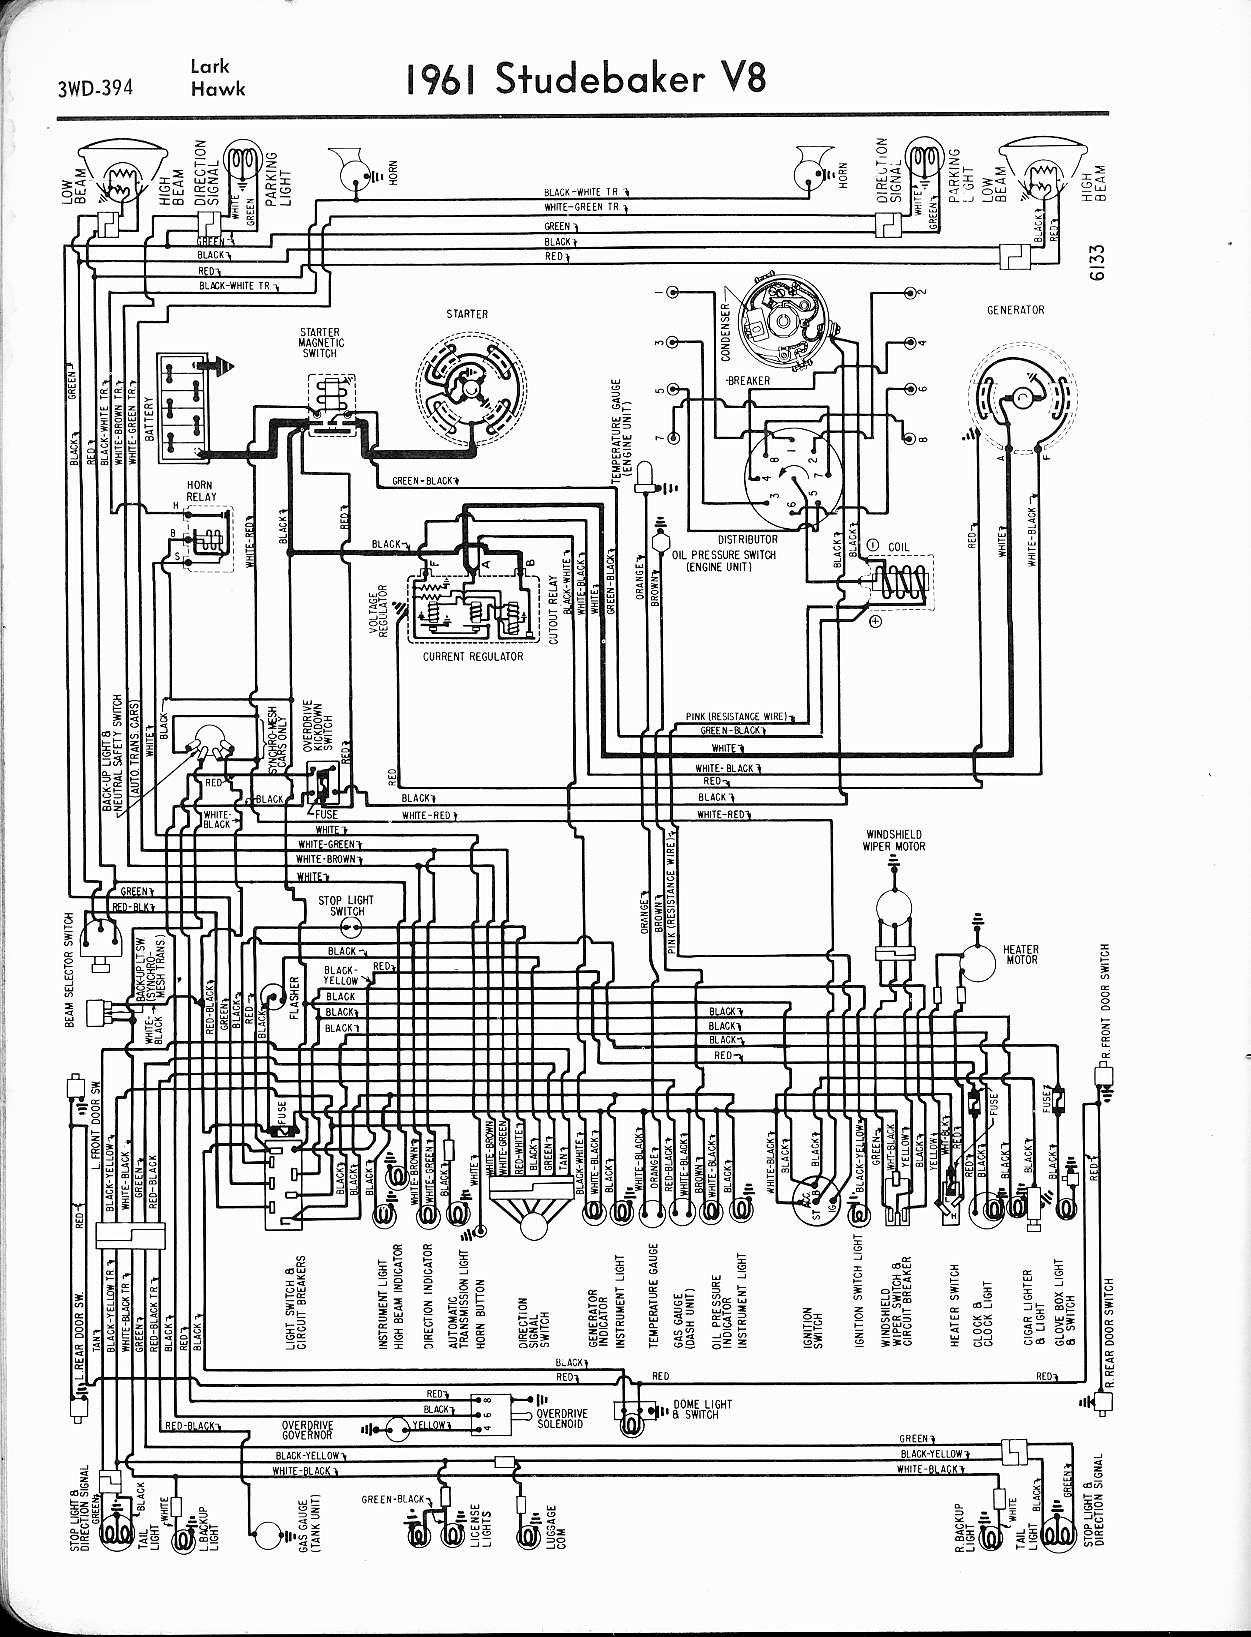 MWire5765 394 studebaker wiring diagrams the old car manual project studebaker wiring diagrams at soozxer.org